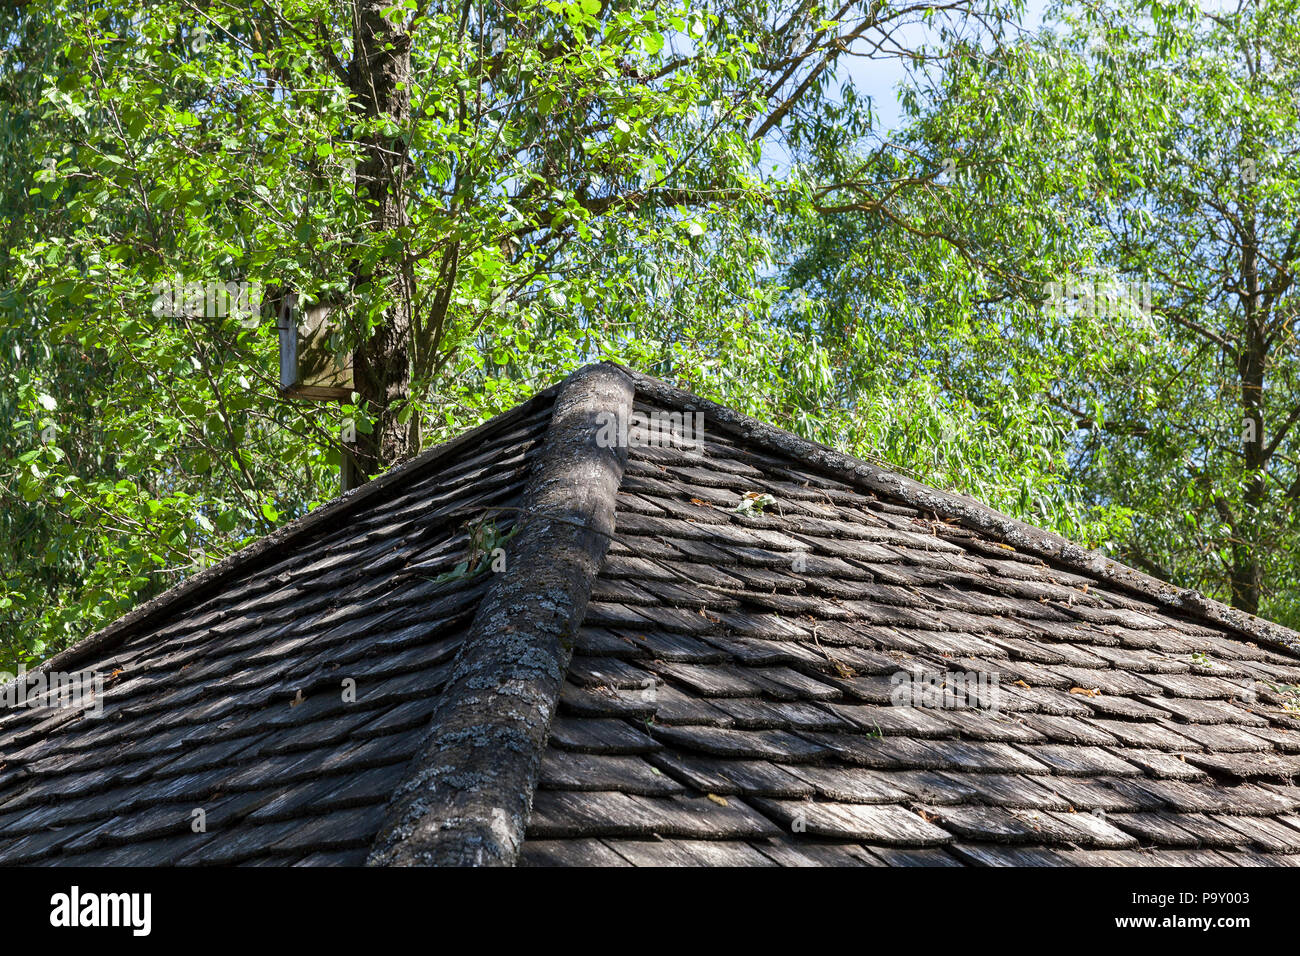 Old Wooden Roof Of The Building Made Of Boards And Planks Photo